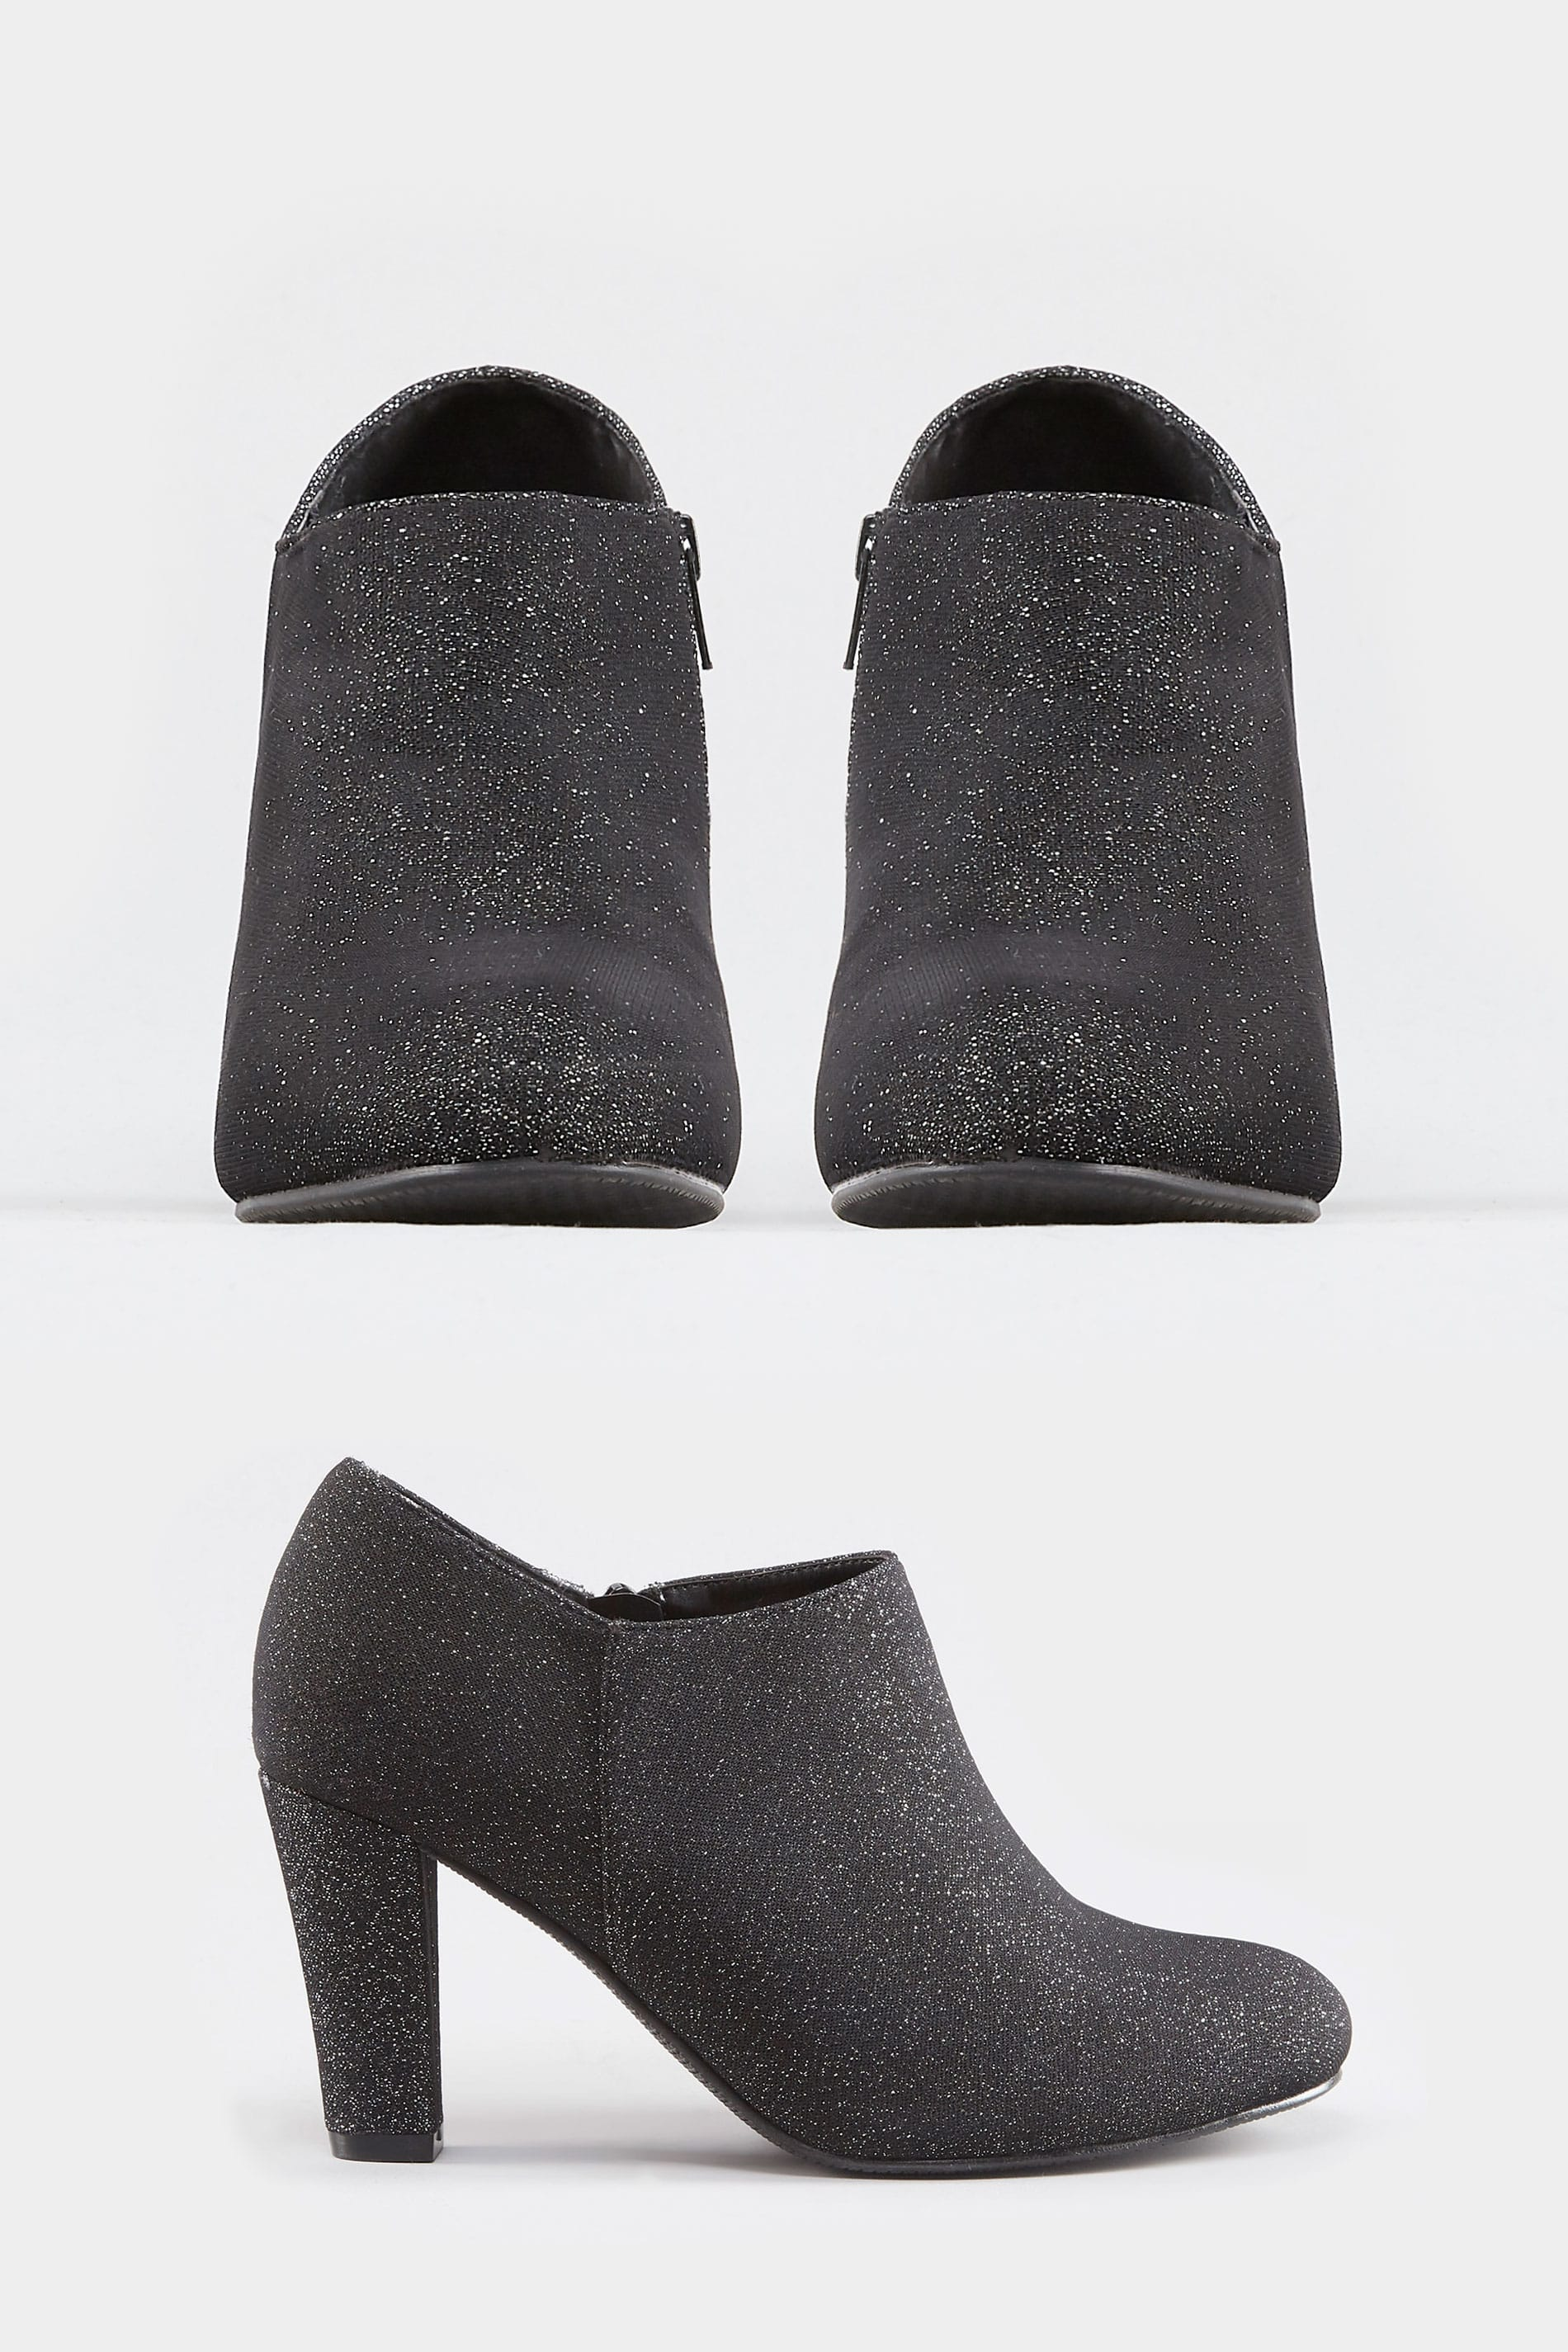 845e841a84be Black Glitter Boot Heels In EEE Fit